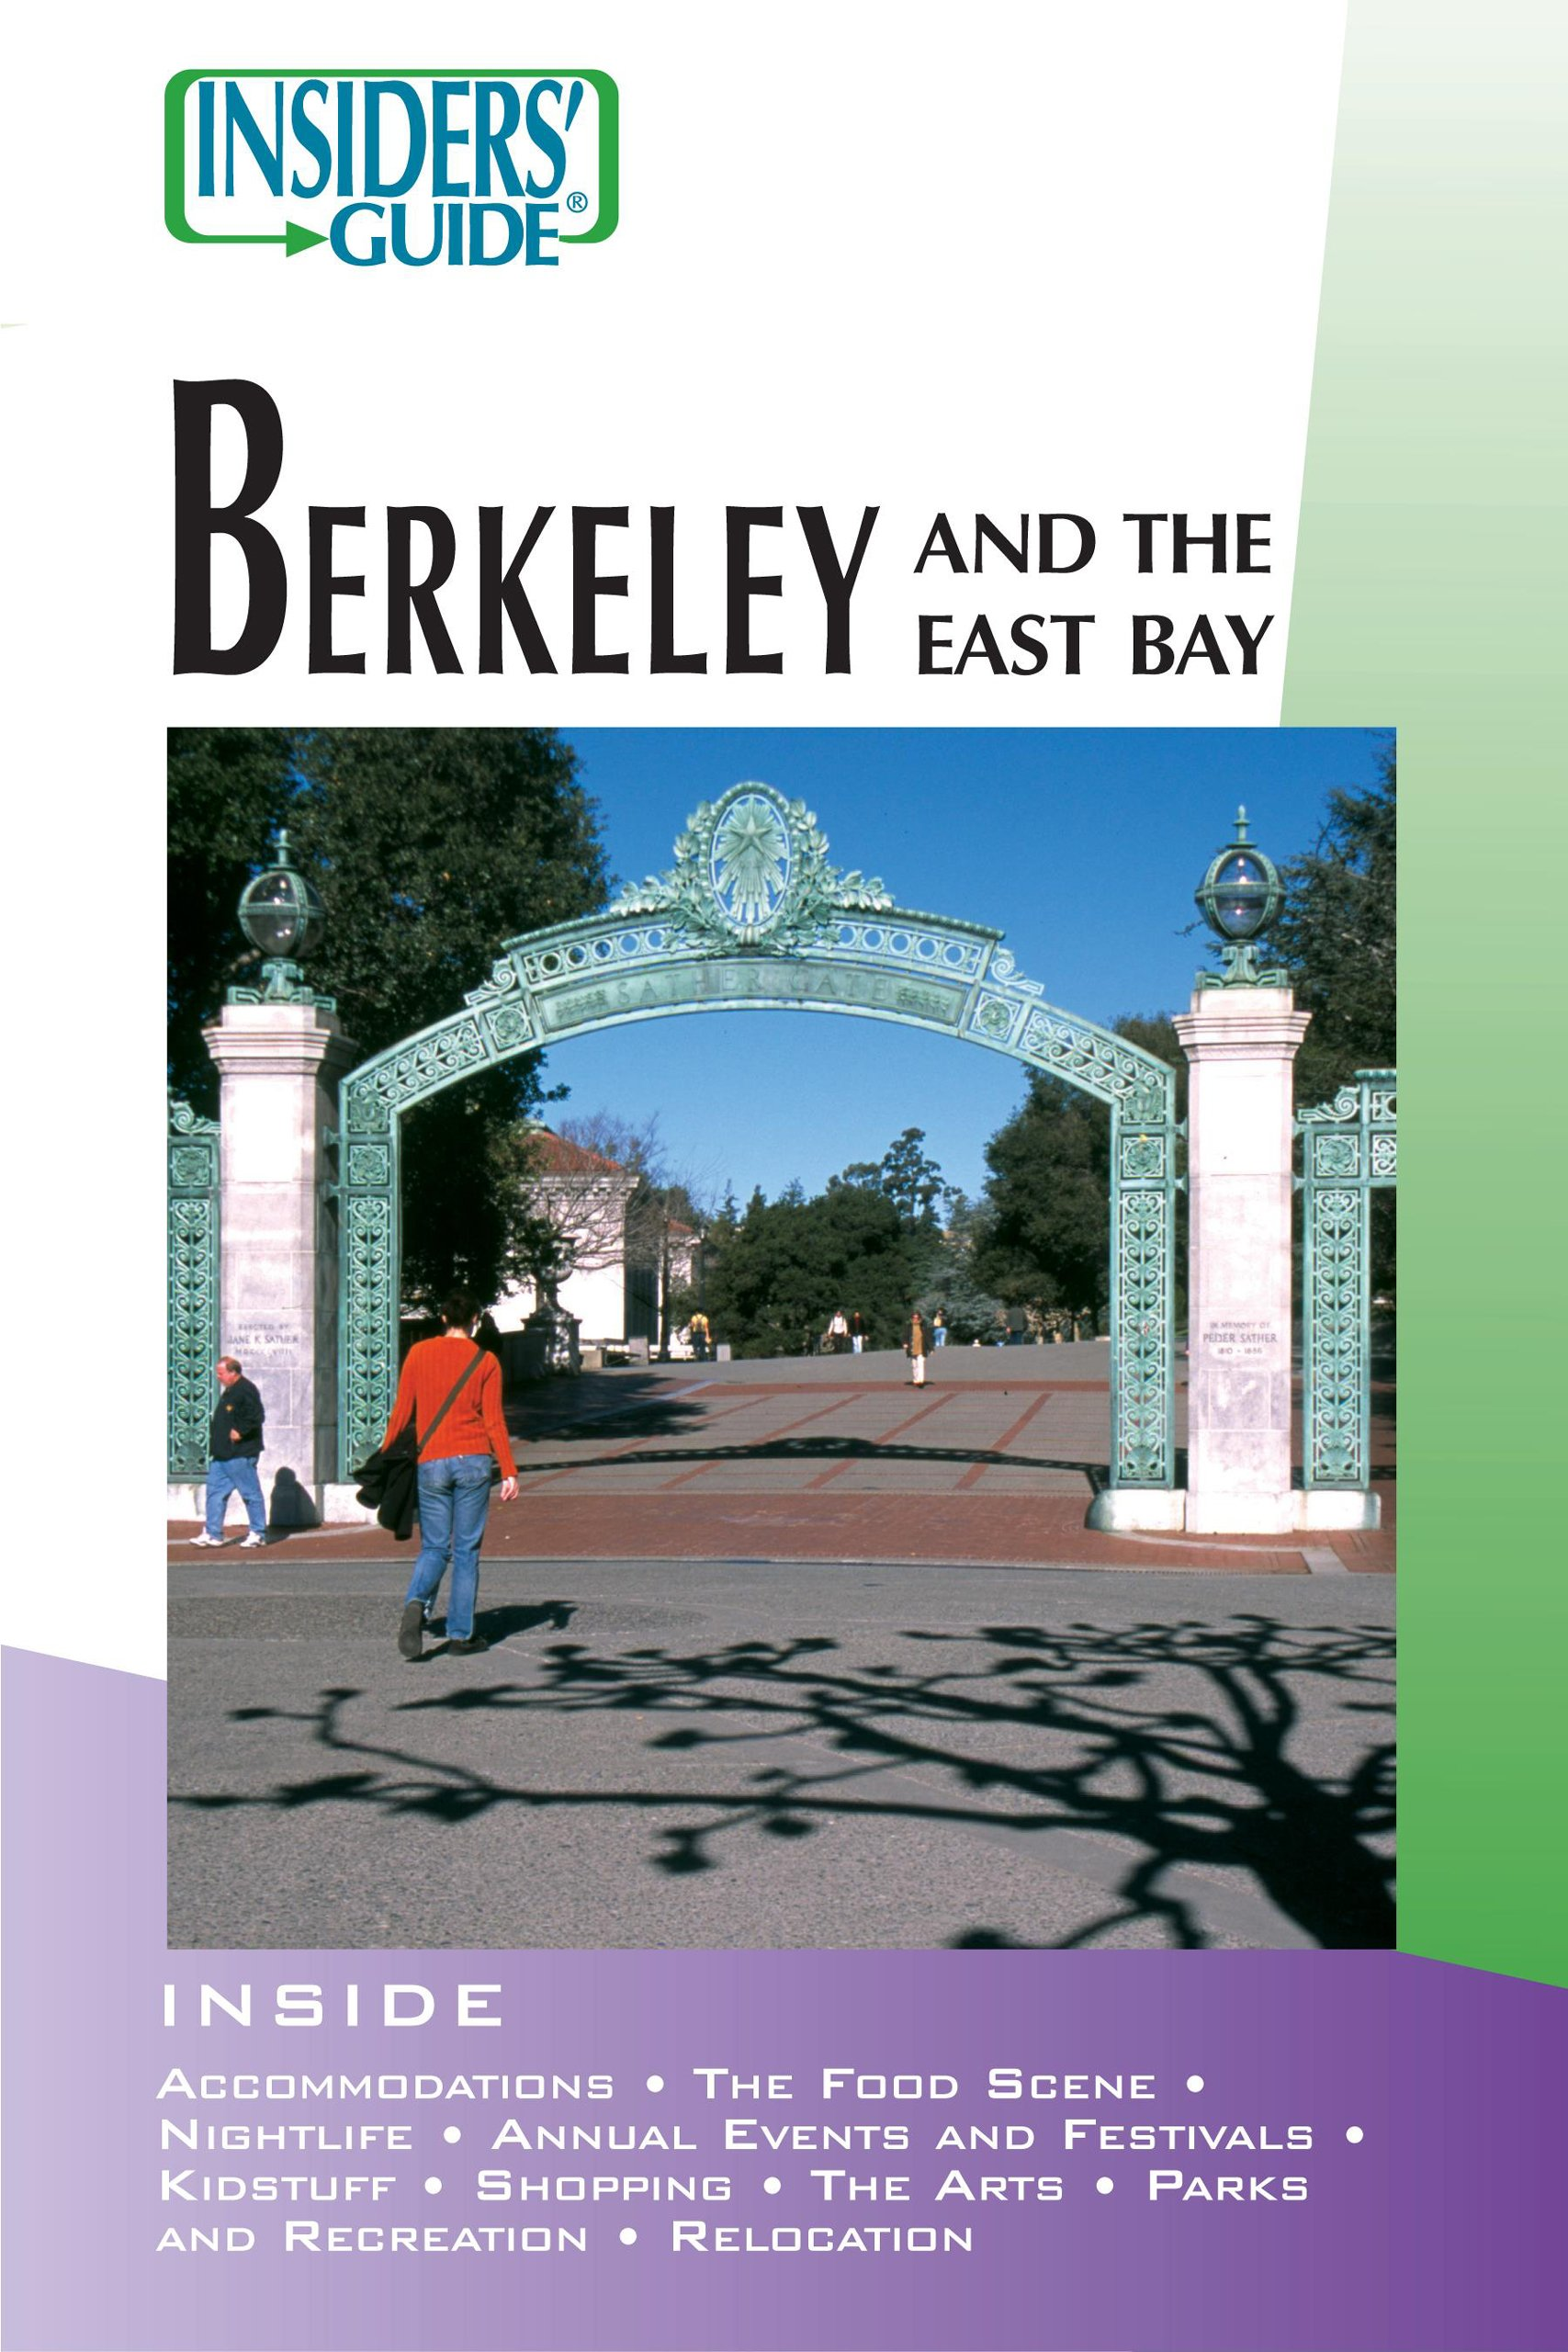 Insiders' Guide to Berkeley and the East Bay (Insiders' Guide Series) pdf